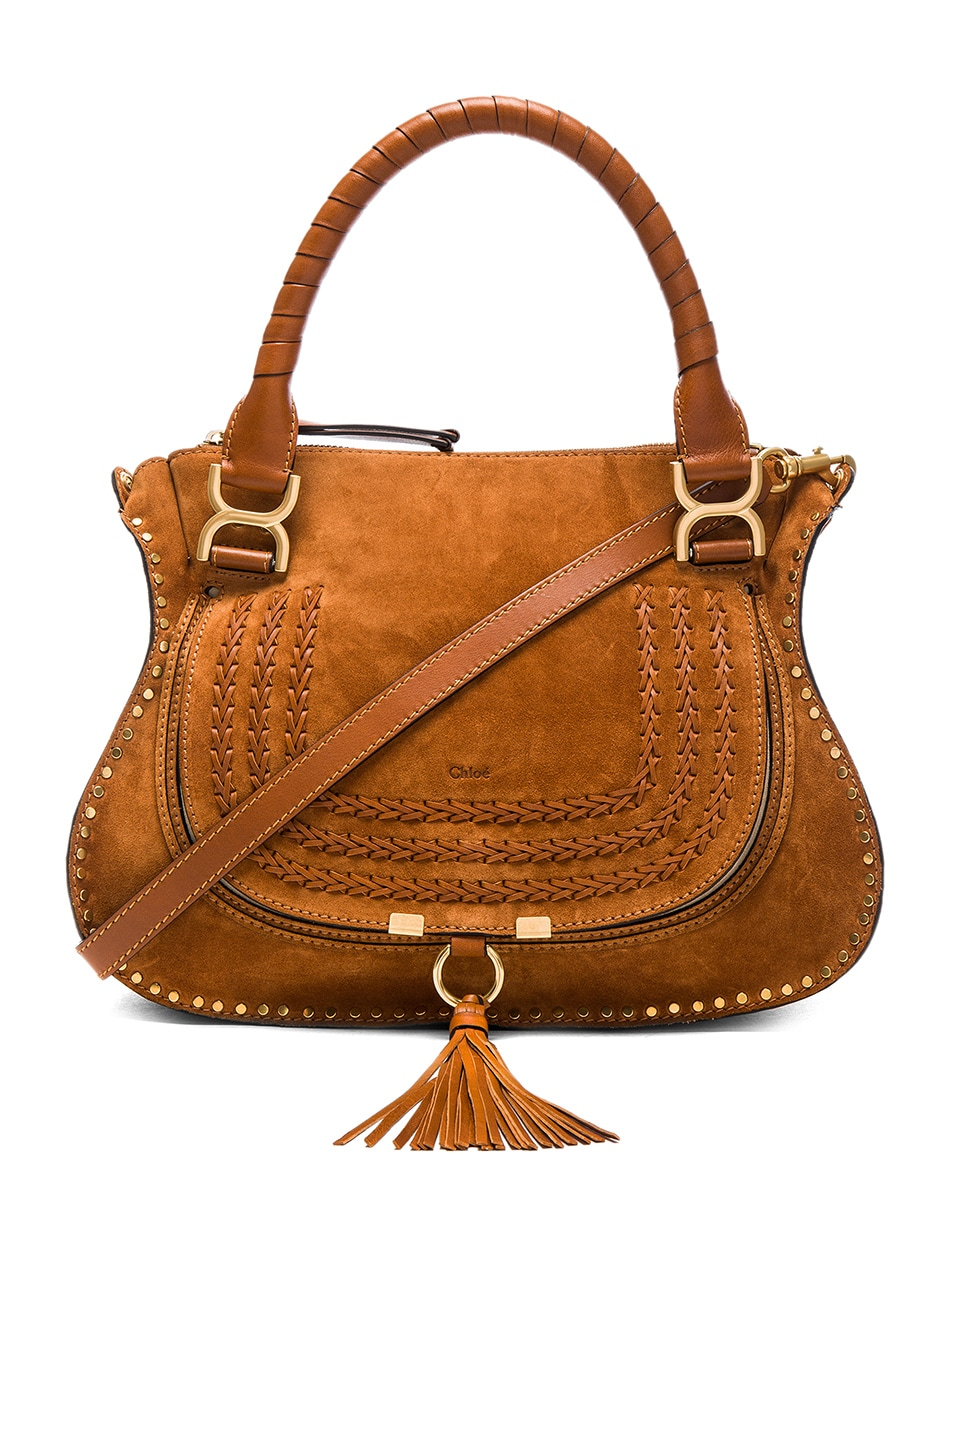 Image 1 of Chloe Small Marcie Suede & Calfskin Satchel in Caramel